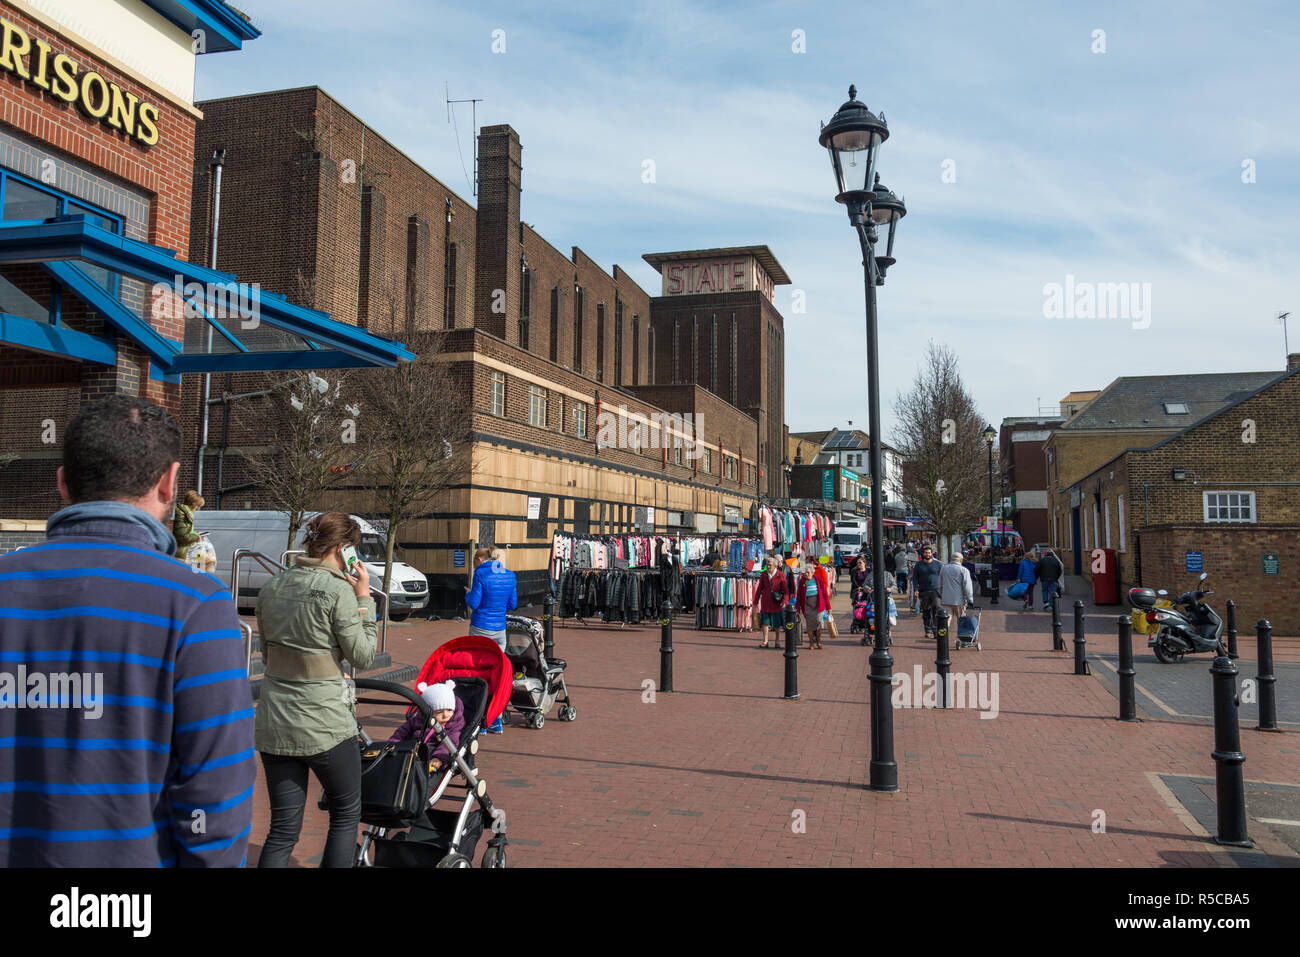 Shopping in the centre of Tilbury, Essex - Stock Image